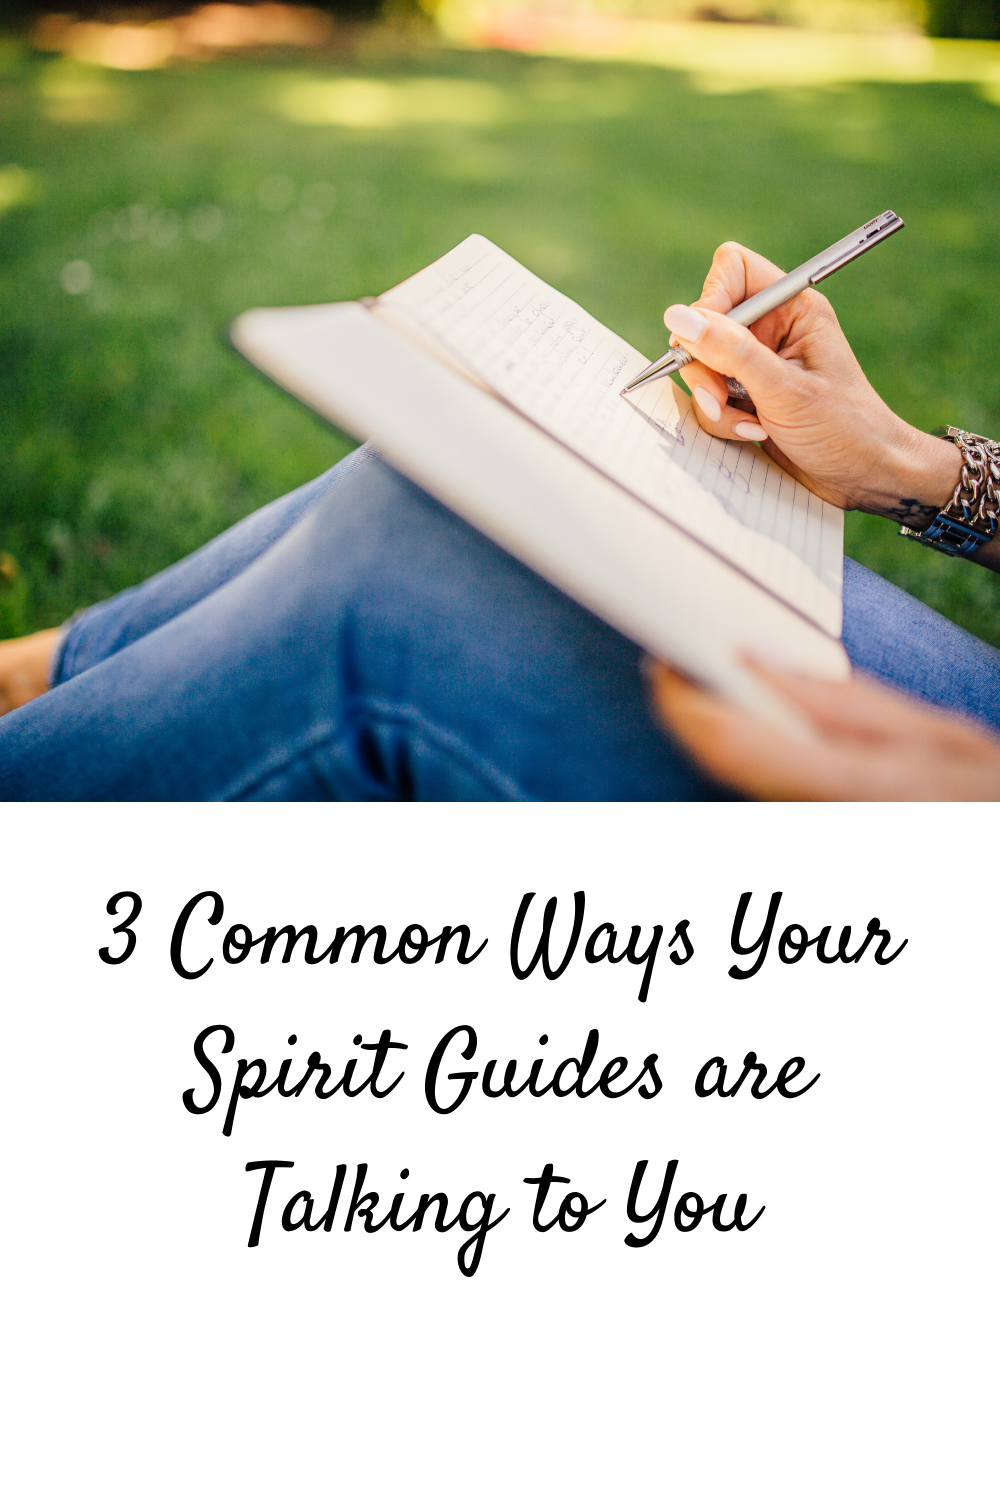 3 Common Ways Your Spirit Guides are Talking to You